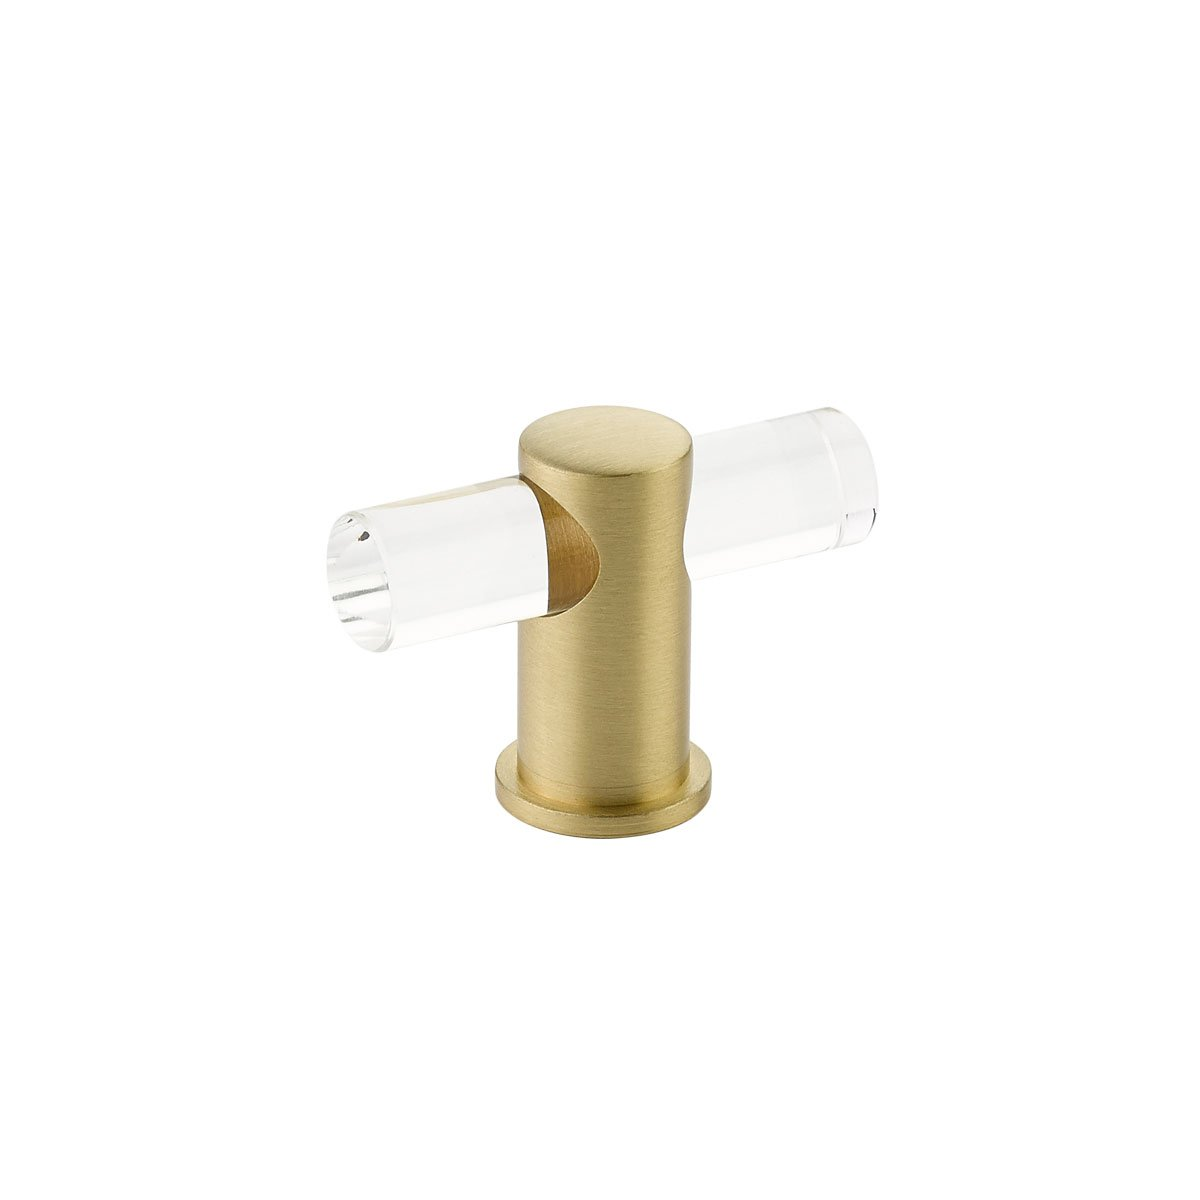 Schaub Lumiere Collection 2 in. (51mm) Adjustable Clear Acrylic T-Knob, Satin Brass - 401-SB